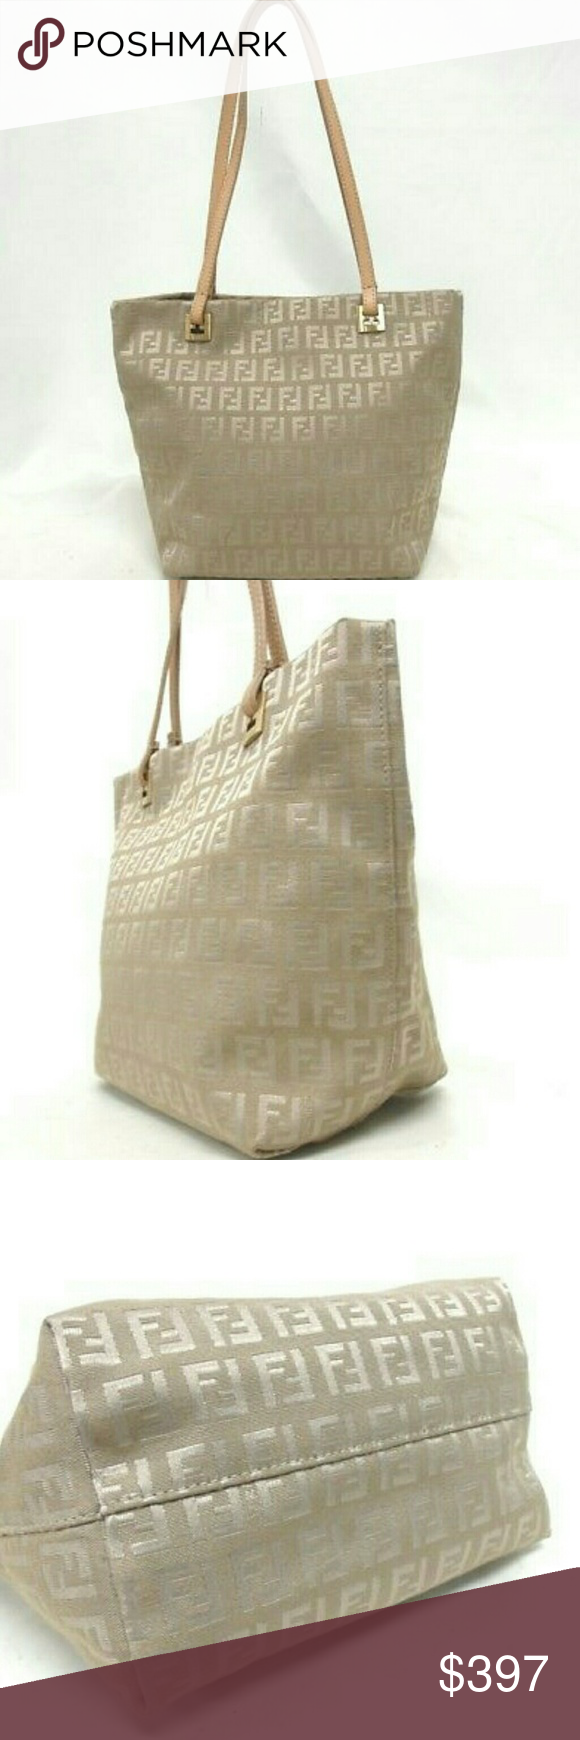 1850ace67d6 Spotted while shopping on Poshmark  Fendi Zucca Monogram beige leather Canvas  tote bag!  poshmark  fashion  shopping  style  Fendi  Handbags